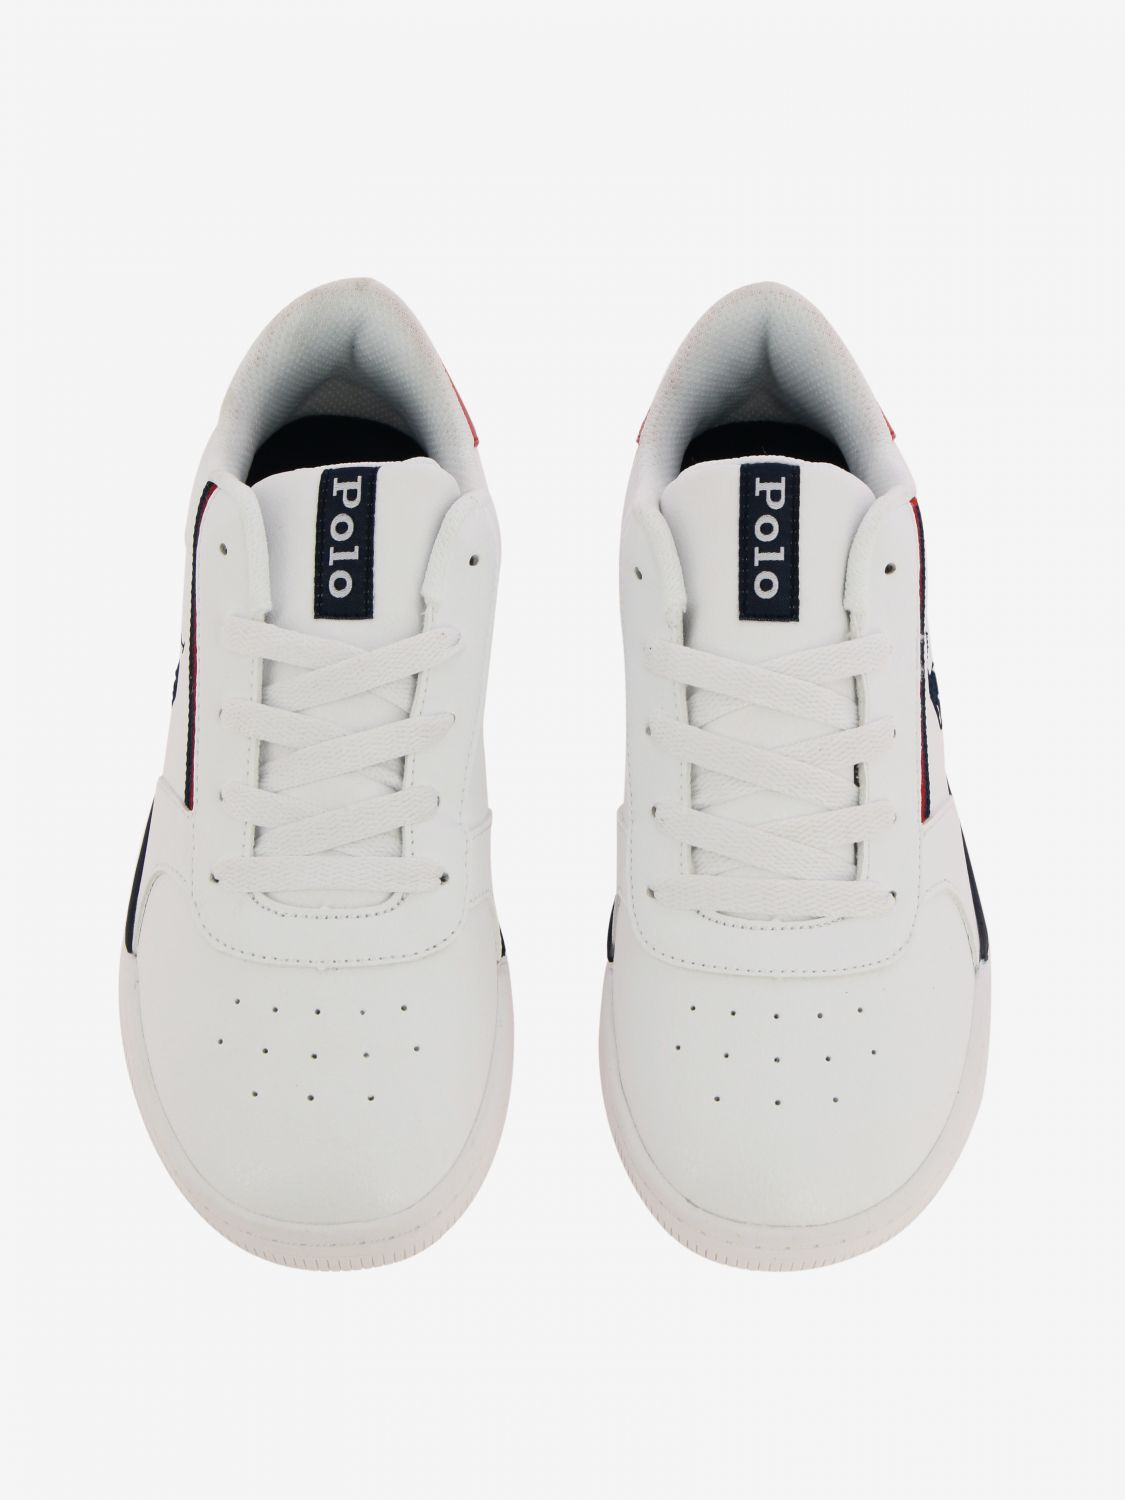 Shoes kids Polo Ralph Lauren white 3